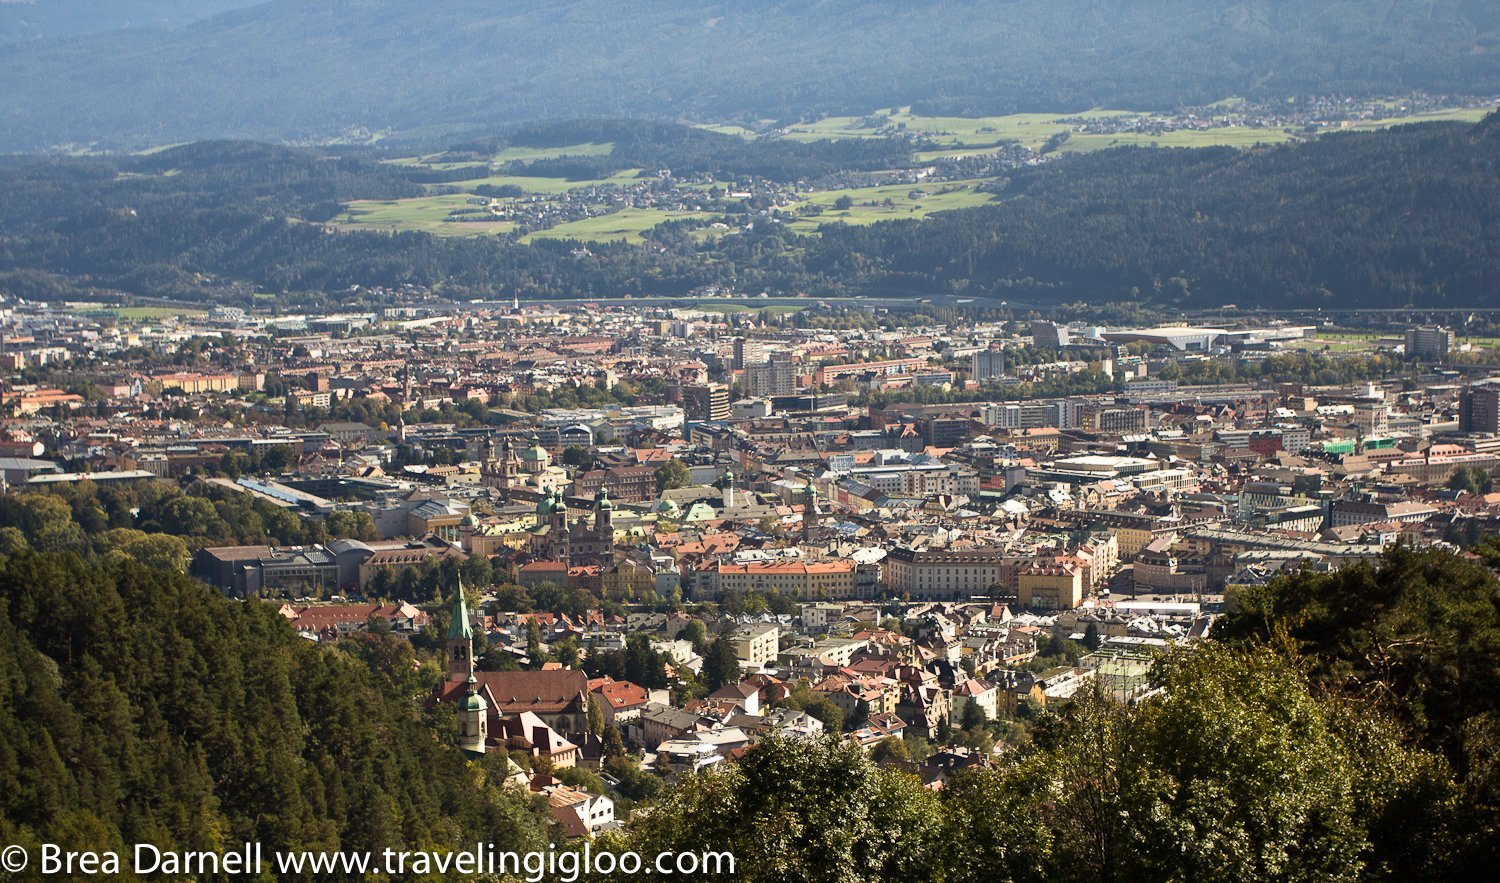 A photo of the center of Innsbruck and the Old Town